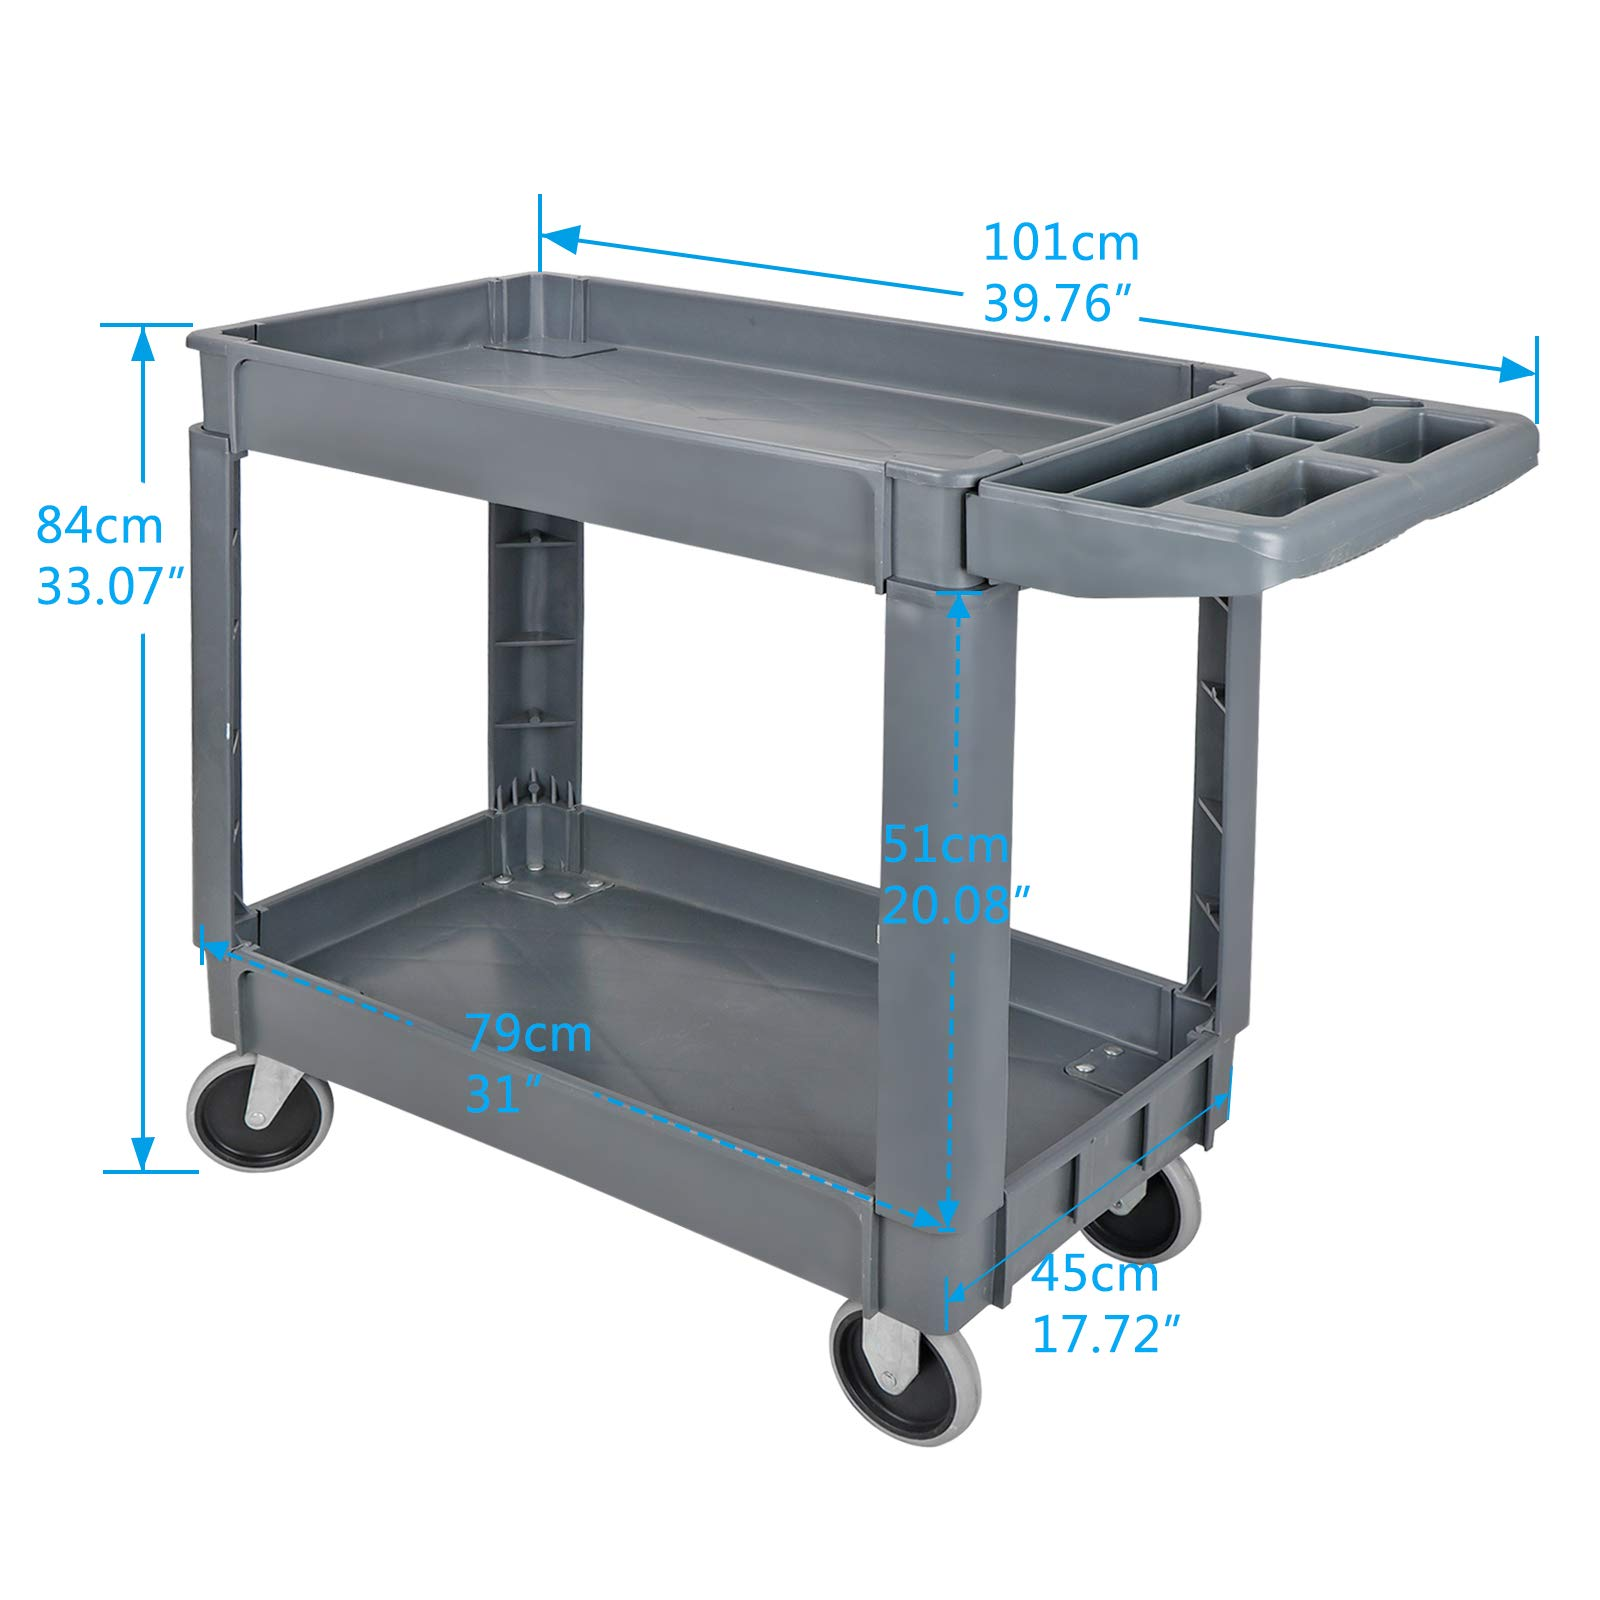 ZENY Rolling Utility Tool Storage Carts Shelves Push Service Cart Tools Organizer with Wheels 550 LBS Capacity by ZENY (Image #2)